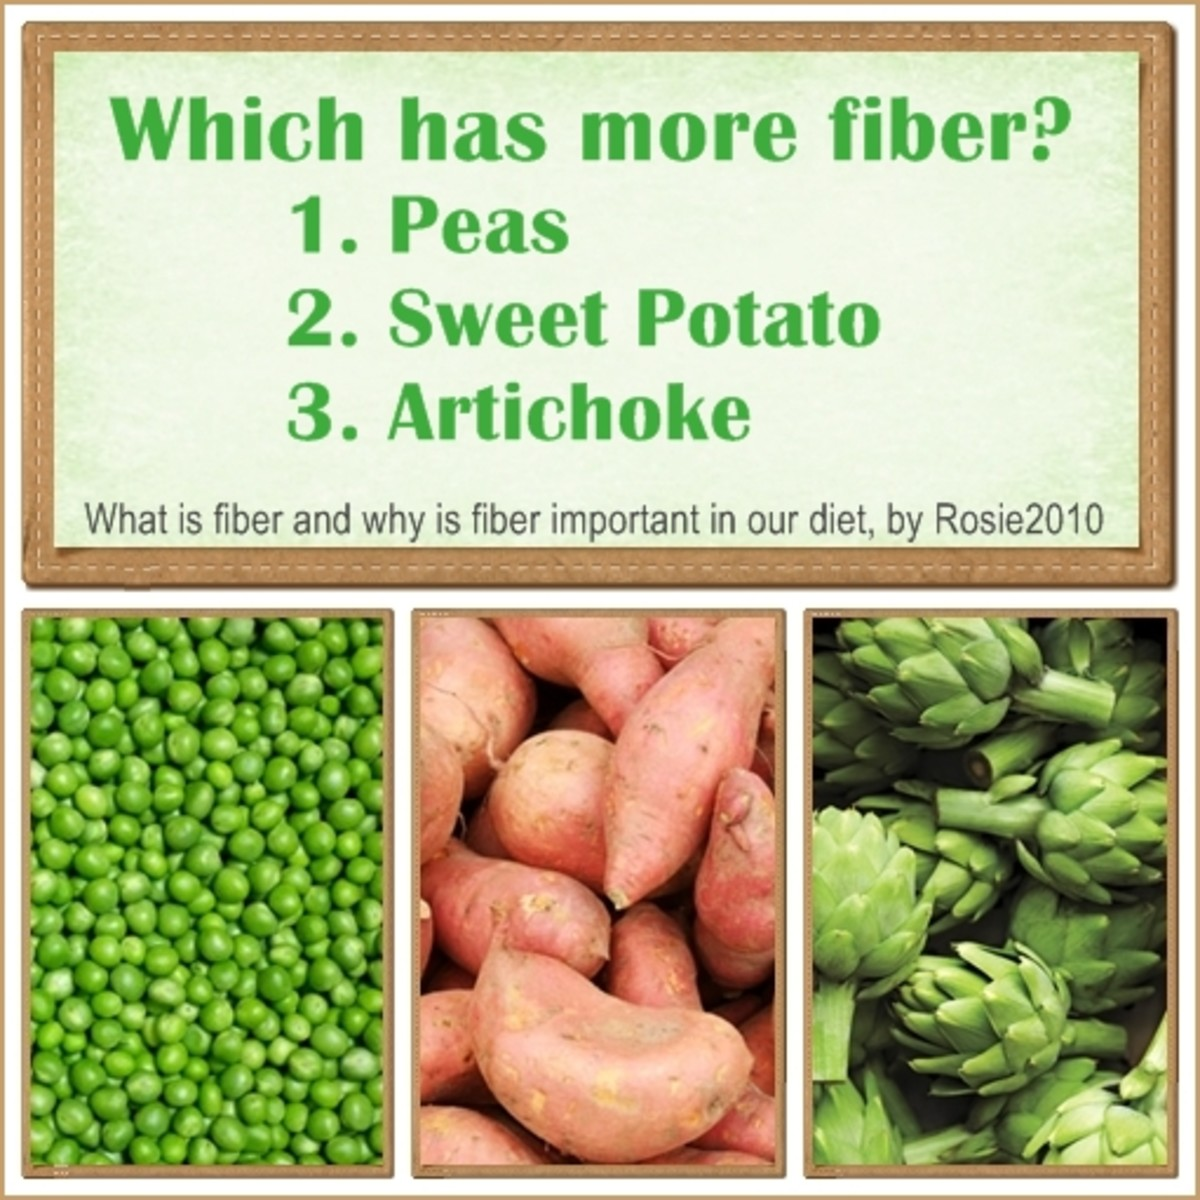 What is Fiber and Why is Fiber Important in our Diet, by Rosie2010 - Answer:  #3 Artichoke